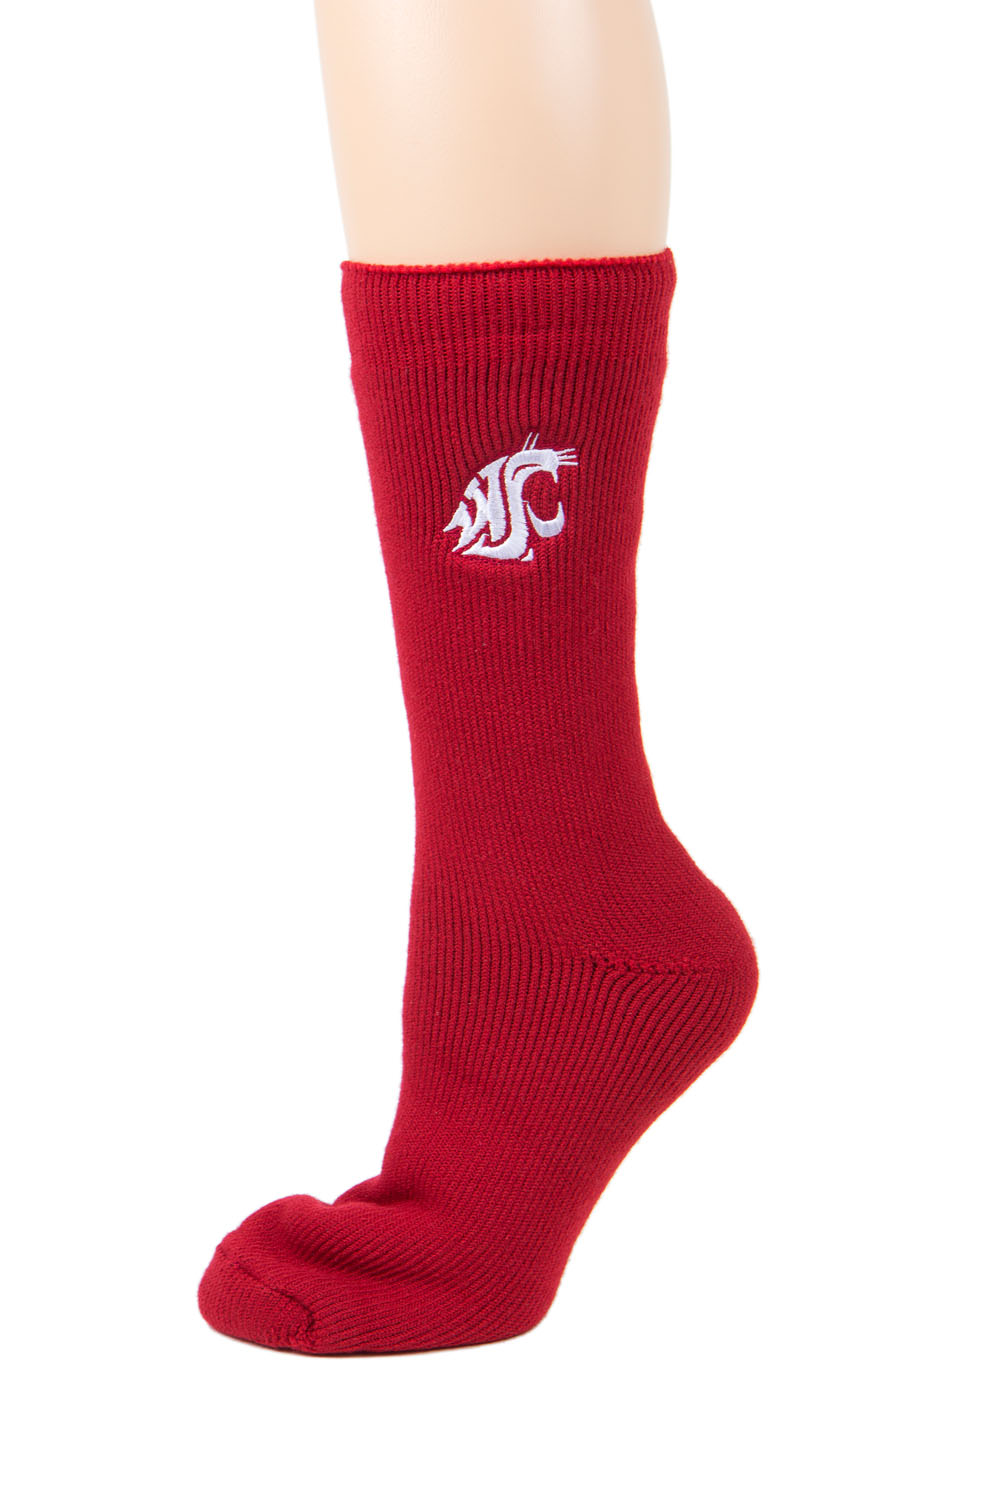 Washington State Cougars Red Thermal Sock by Donegal Bay